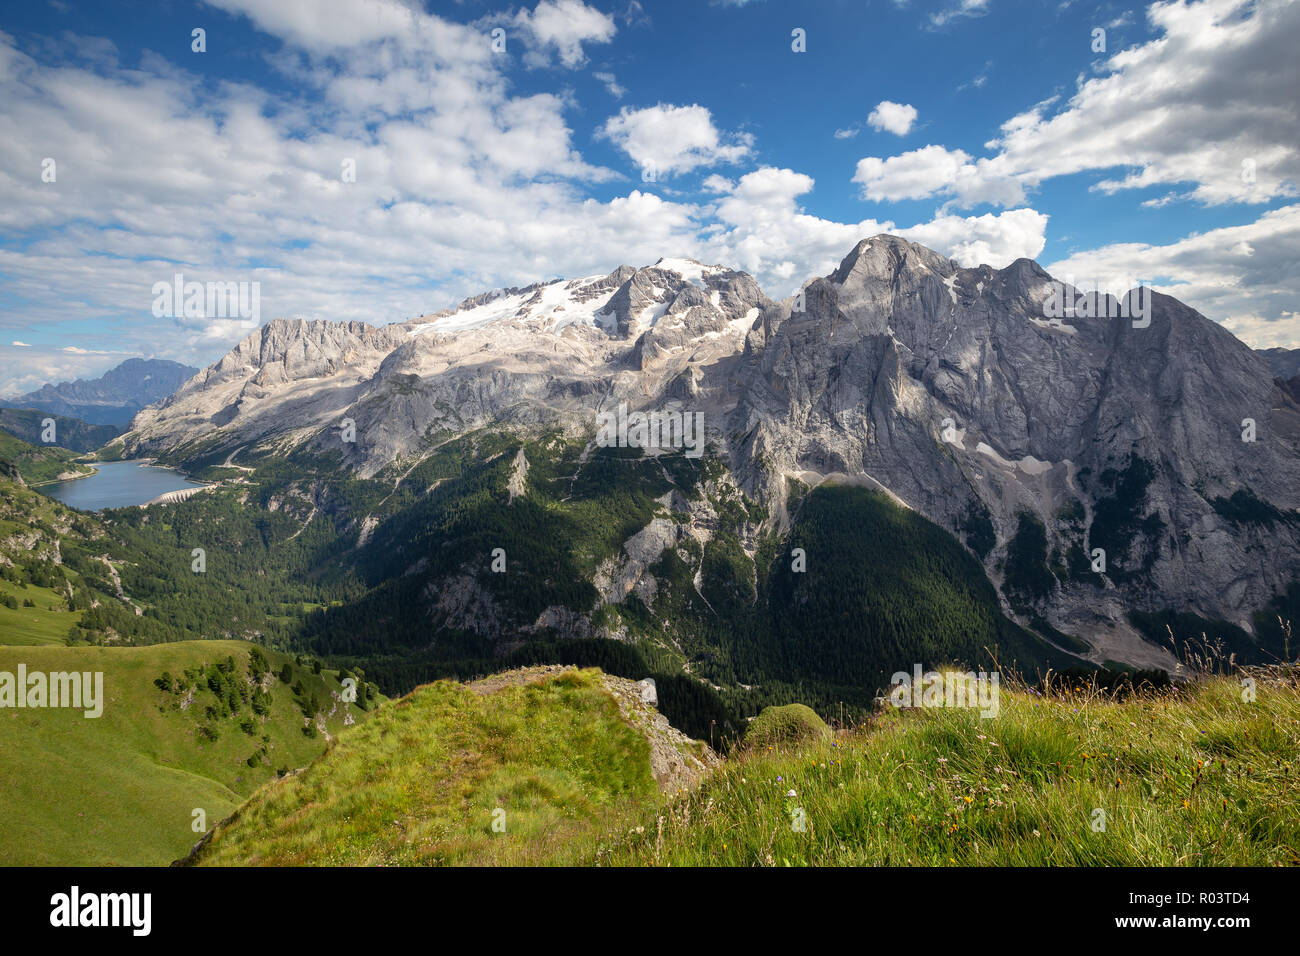 Viel dal Pan. The Marmolada group. Lago di Fedaia. The Dolomites. - Stock Image